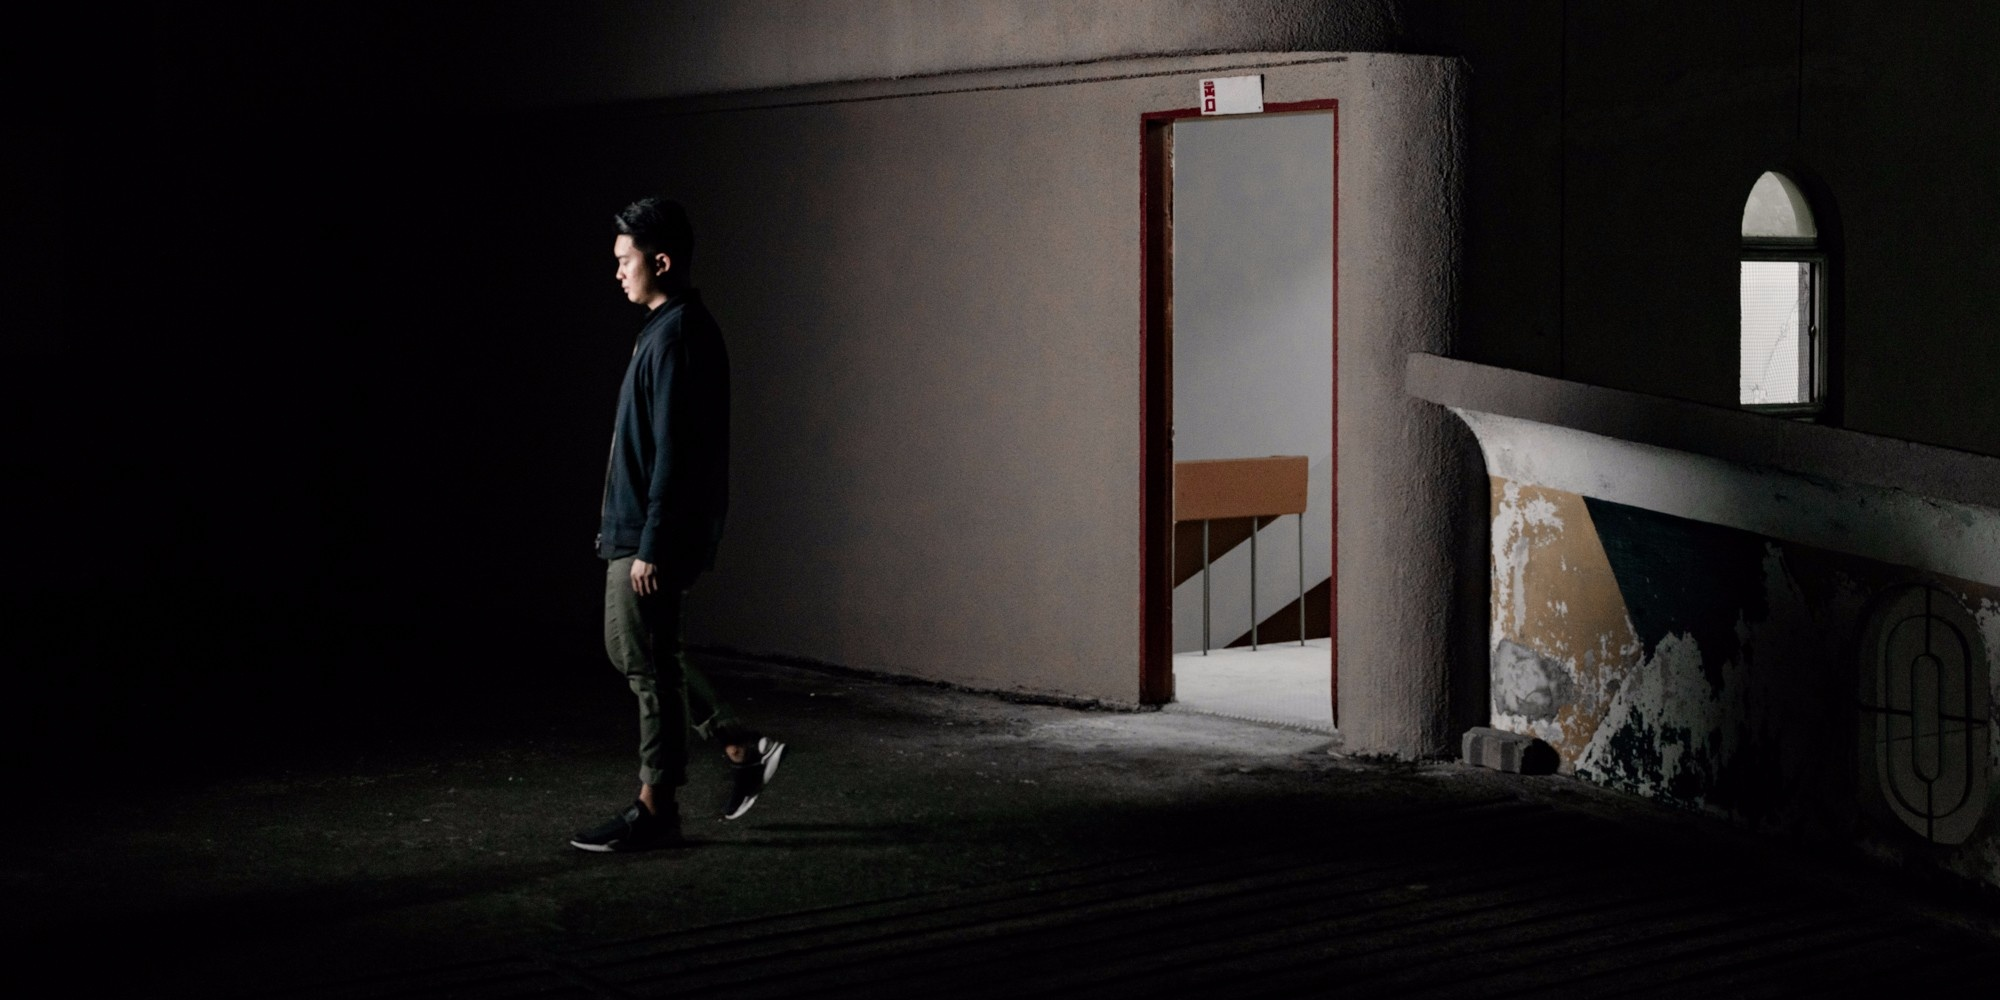 Intriguant launches Recluse LP at Esplanade Annexe Studio in early 2017